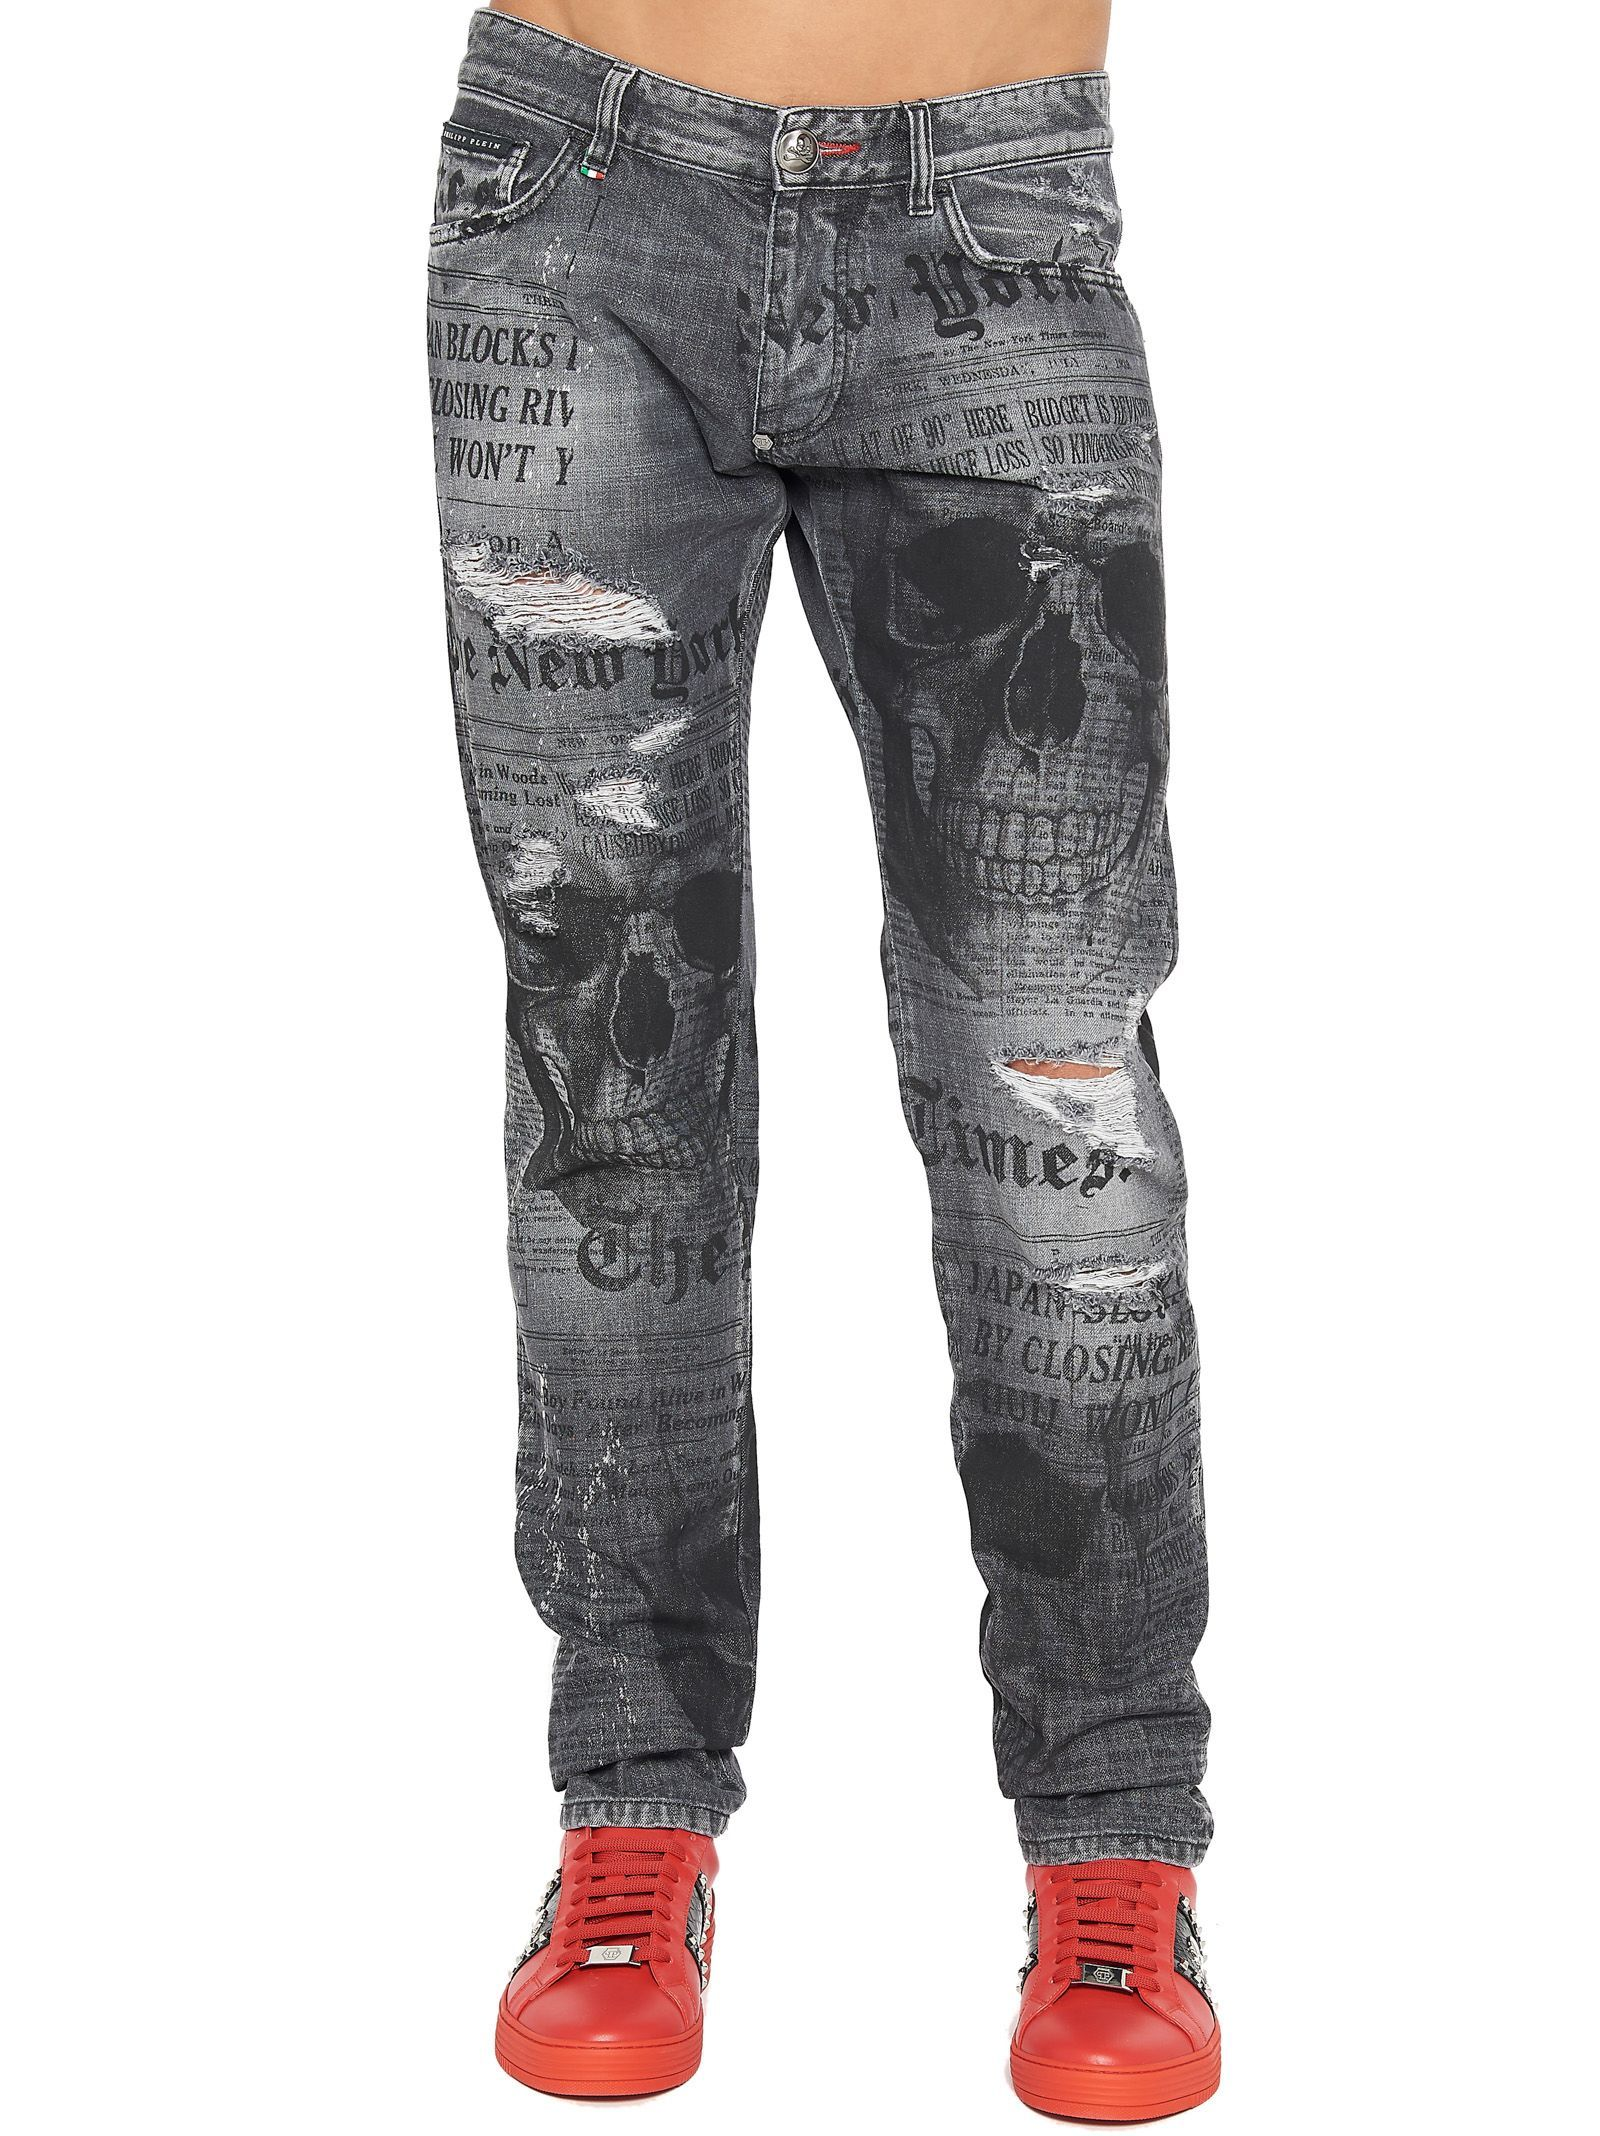 4681d97d48a92 PHILIPP PLEIN JEANS.  philippplein  cloth     Philipp Plein Men ...